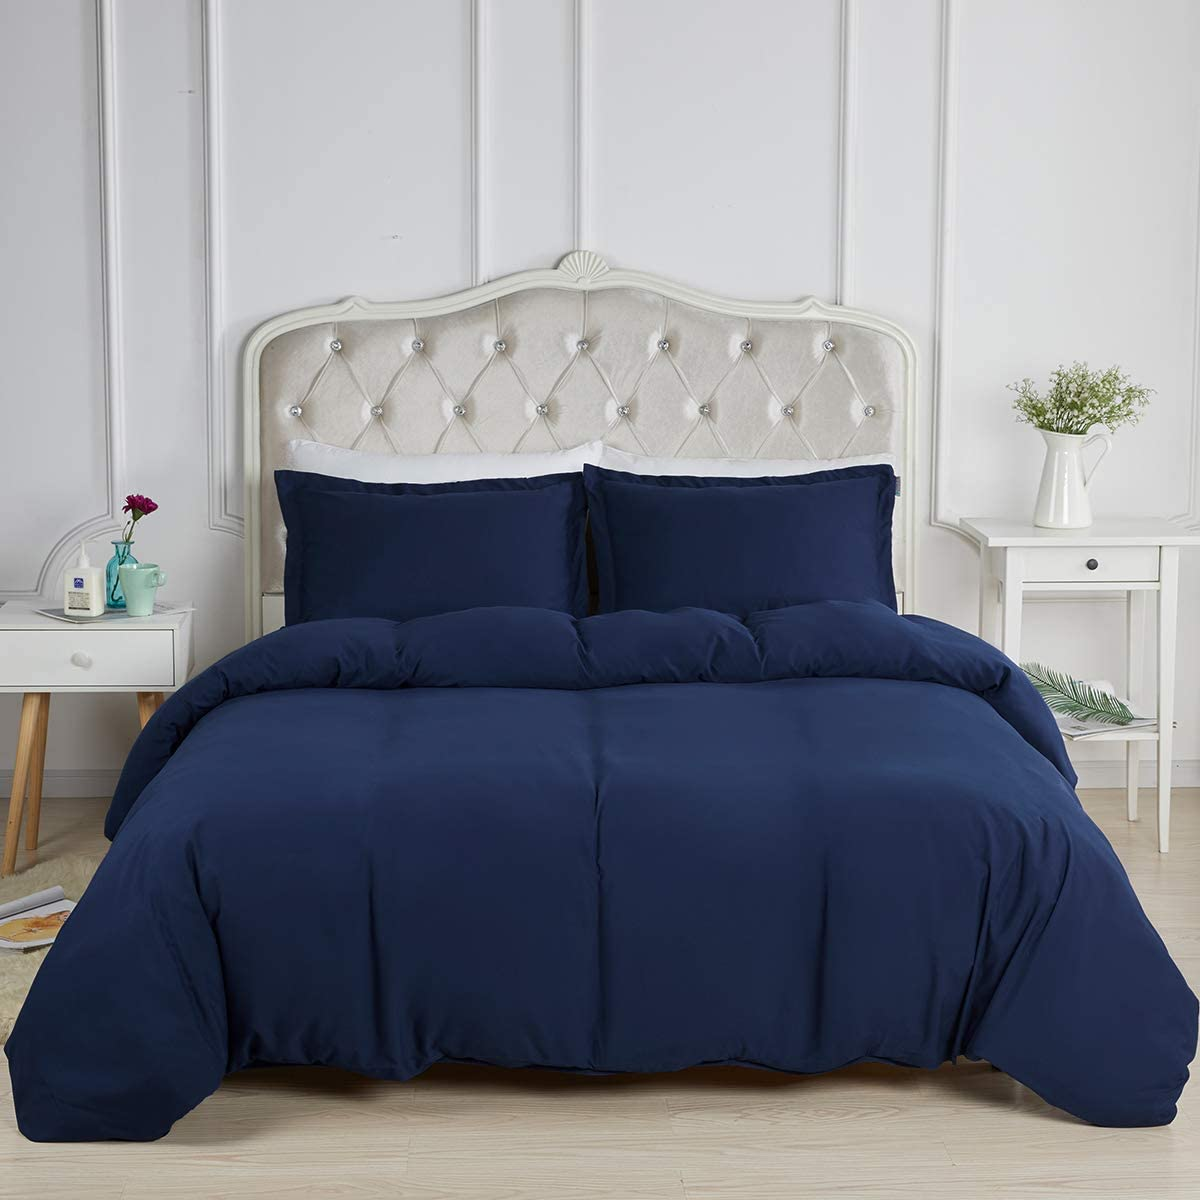 STONECREST Classic Home Decor, Inc Navy Duvet Cover King, Ultra Soft Warm Solid 3pc Comforter Cover, Microfiber Bedding Set with Button Closure and Corner Ties (Navy Blue, King)